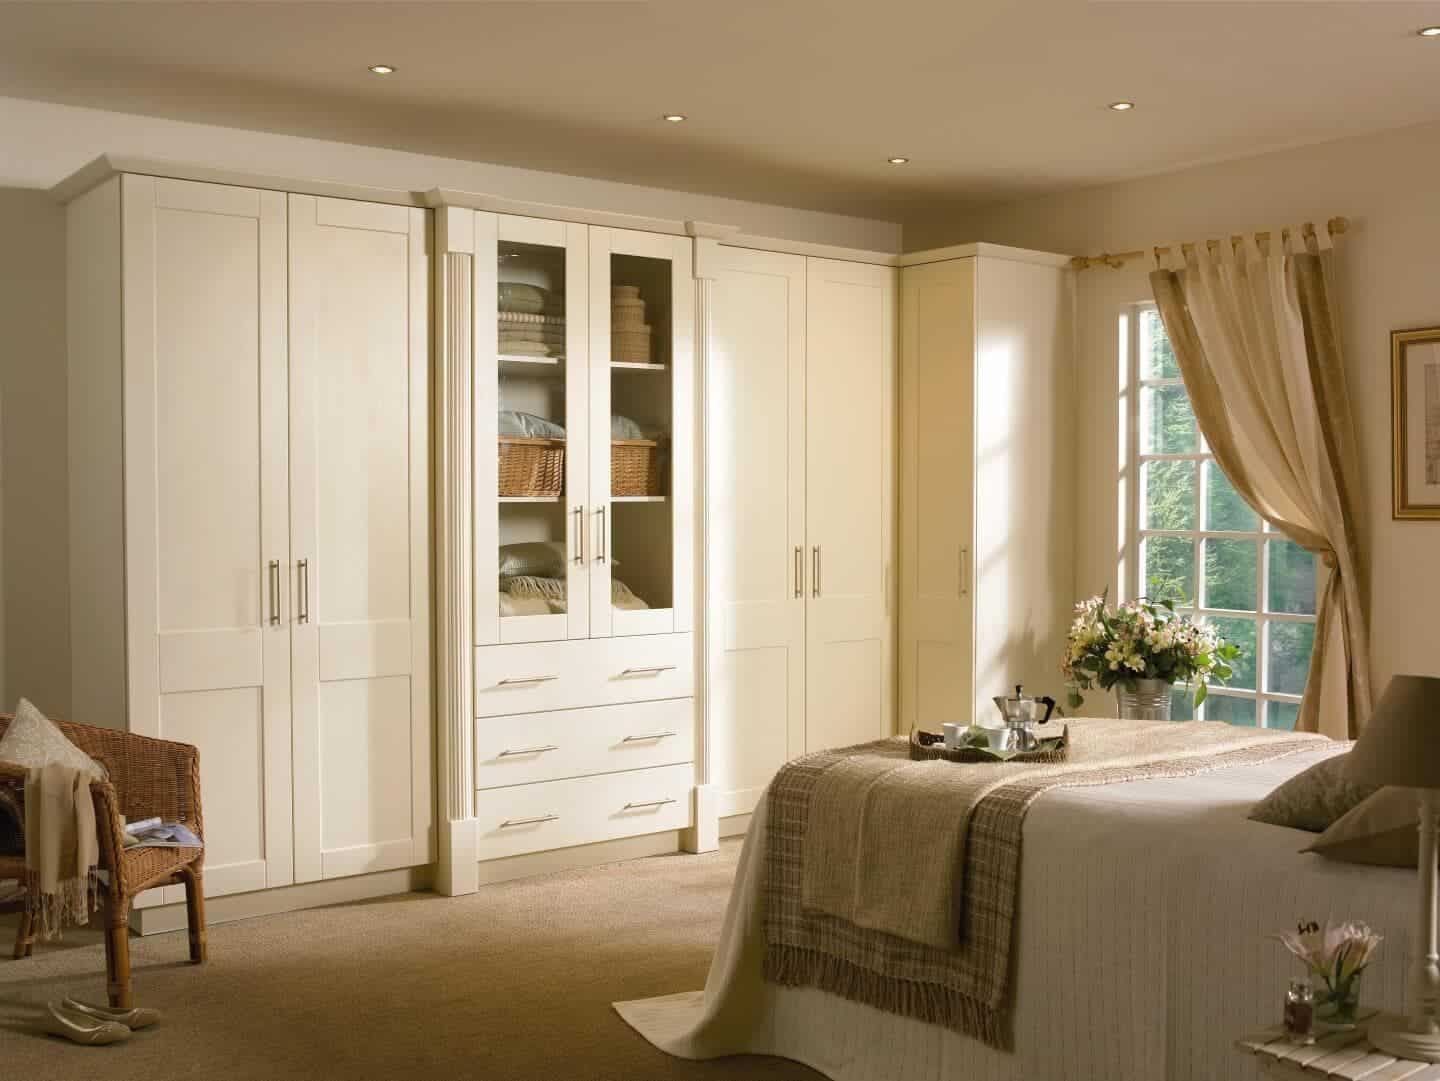 Bedroom with ivory fittings